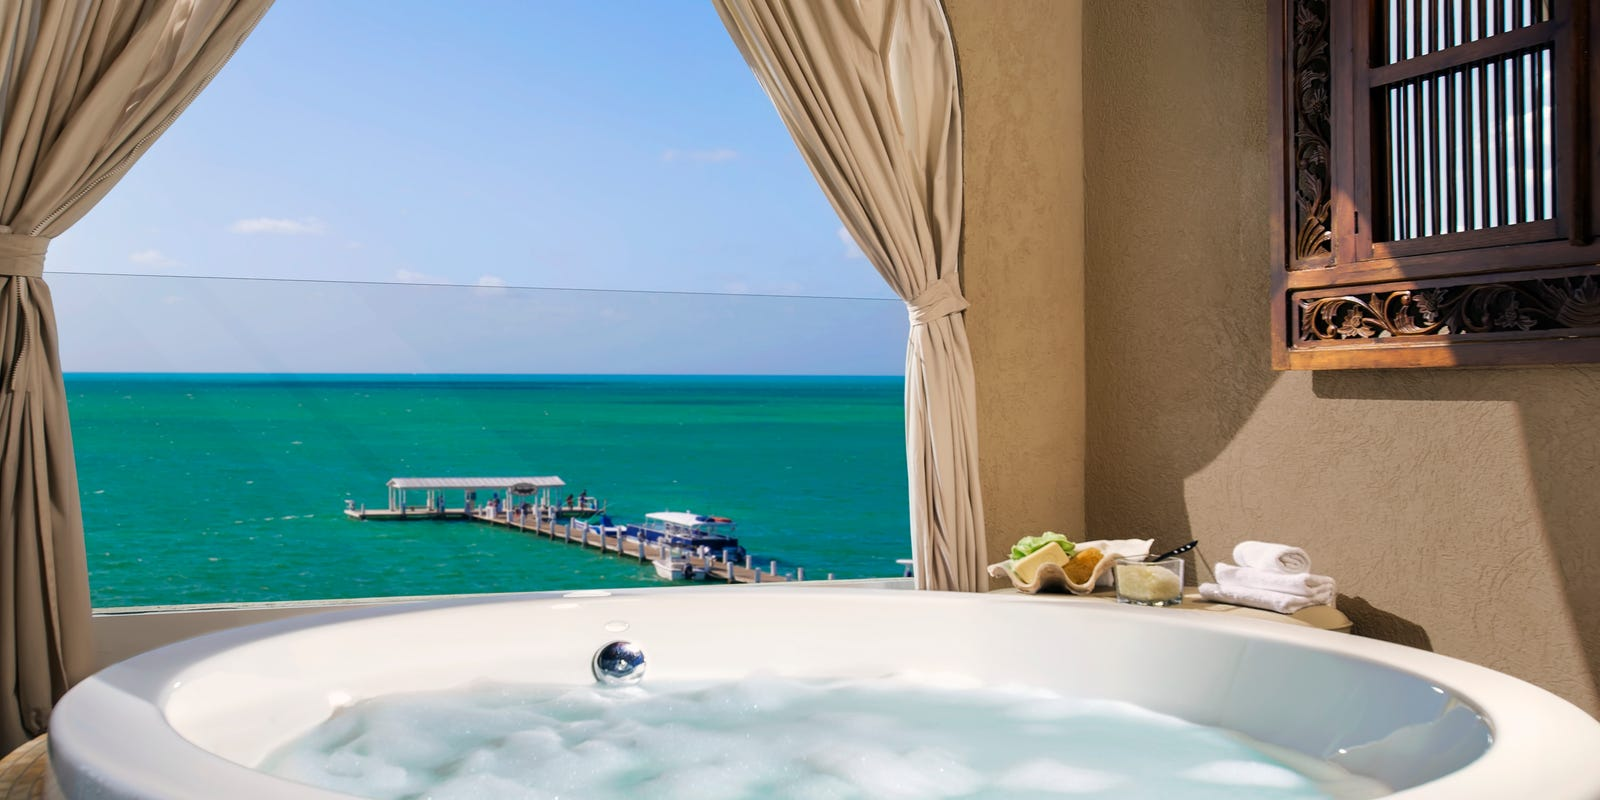 Scenic relaxing: 9 hot tubs for soaking up the scenery